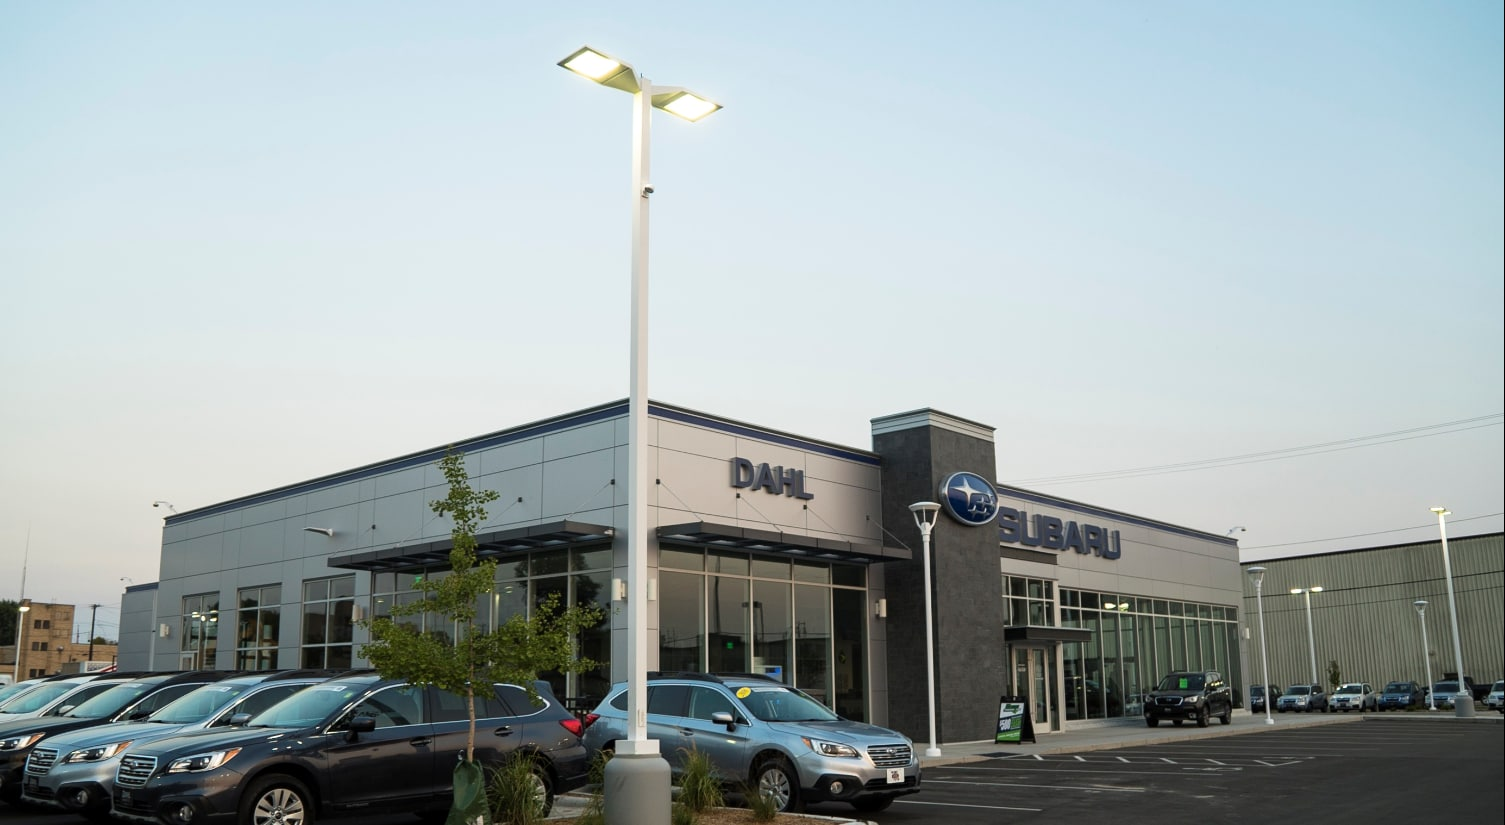 Dahl Ford La Crosse >> Dahl Subaru | Subaru Dealer in La Crosse, WI